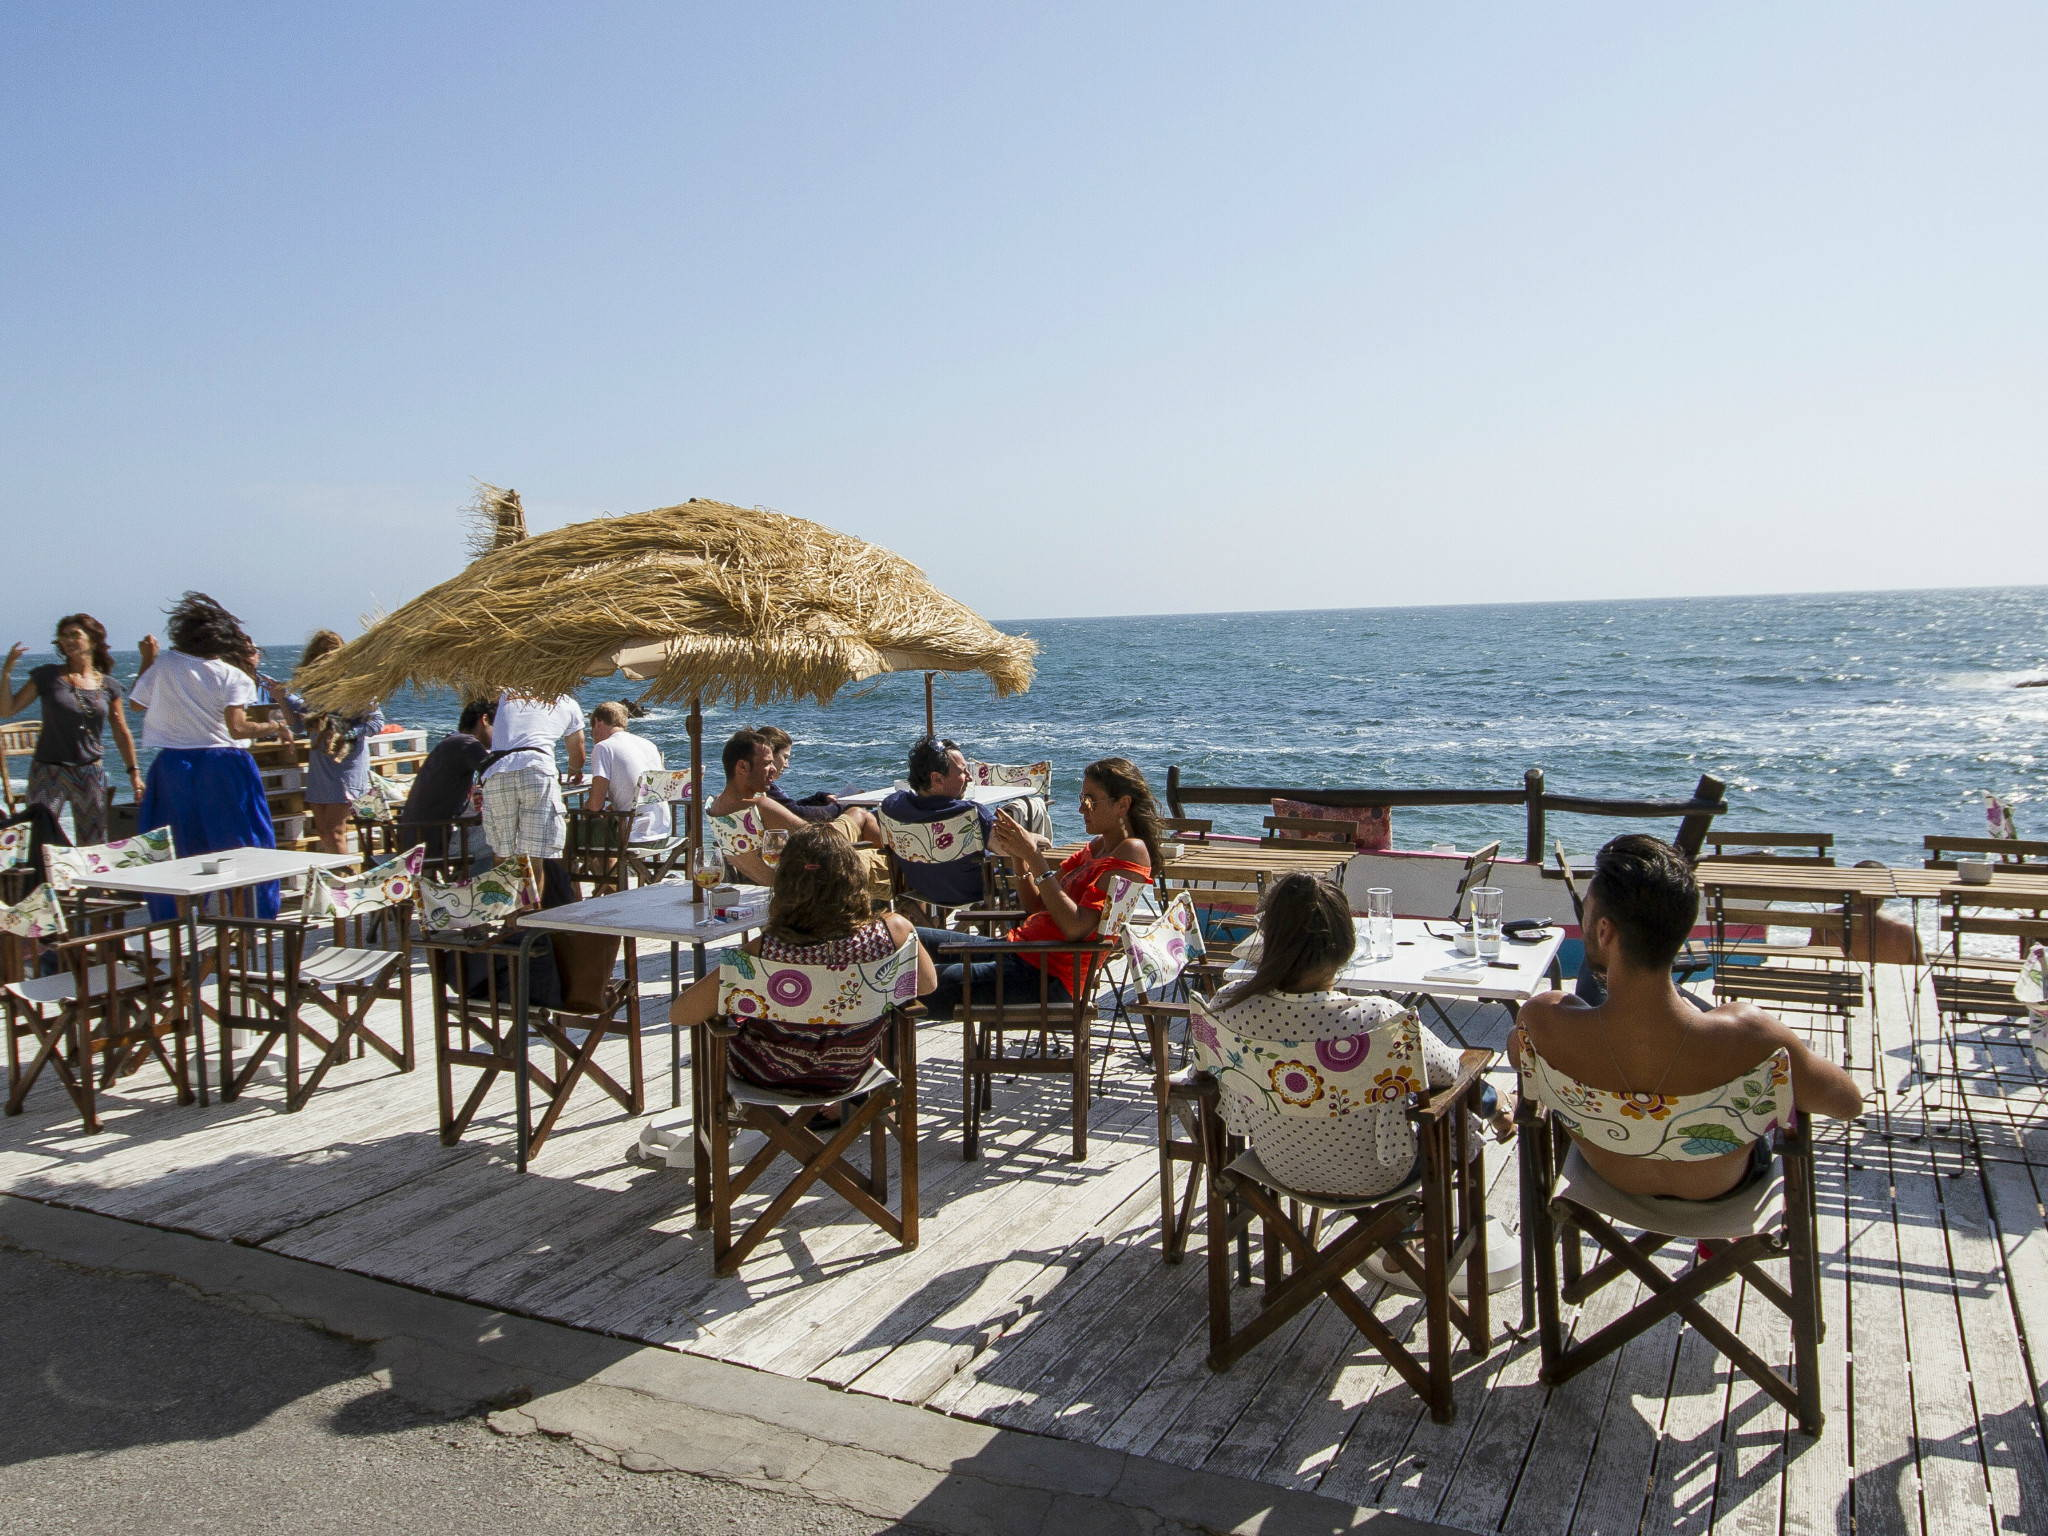 Our team picks Aguda beach as one of the places to get fresh fish and seafood in Porto.